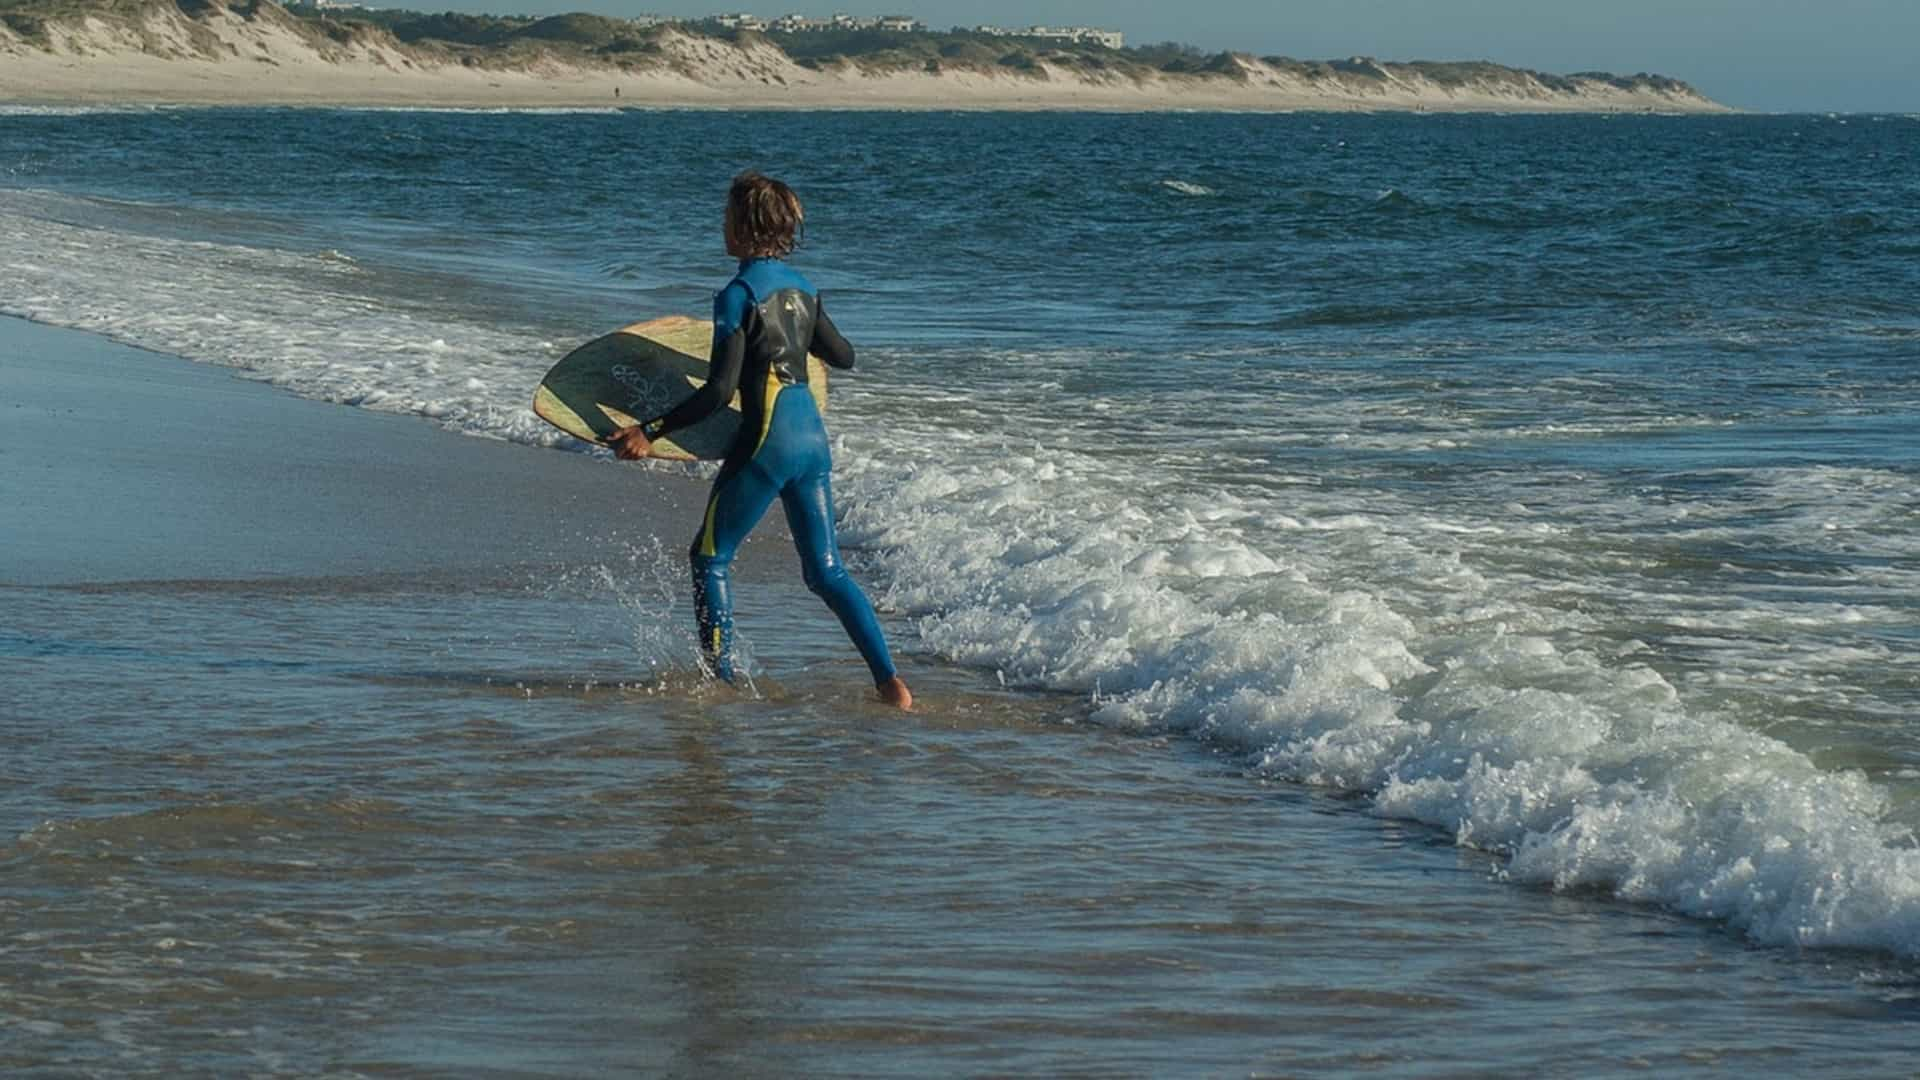 skimboards for wave riding